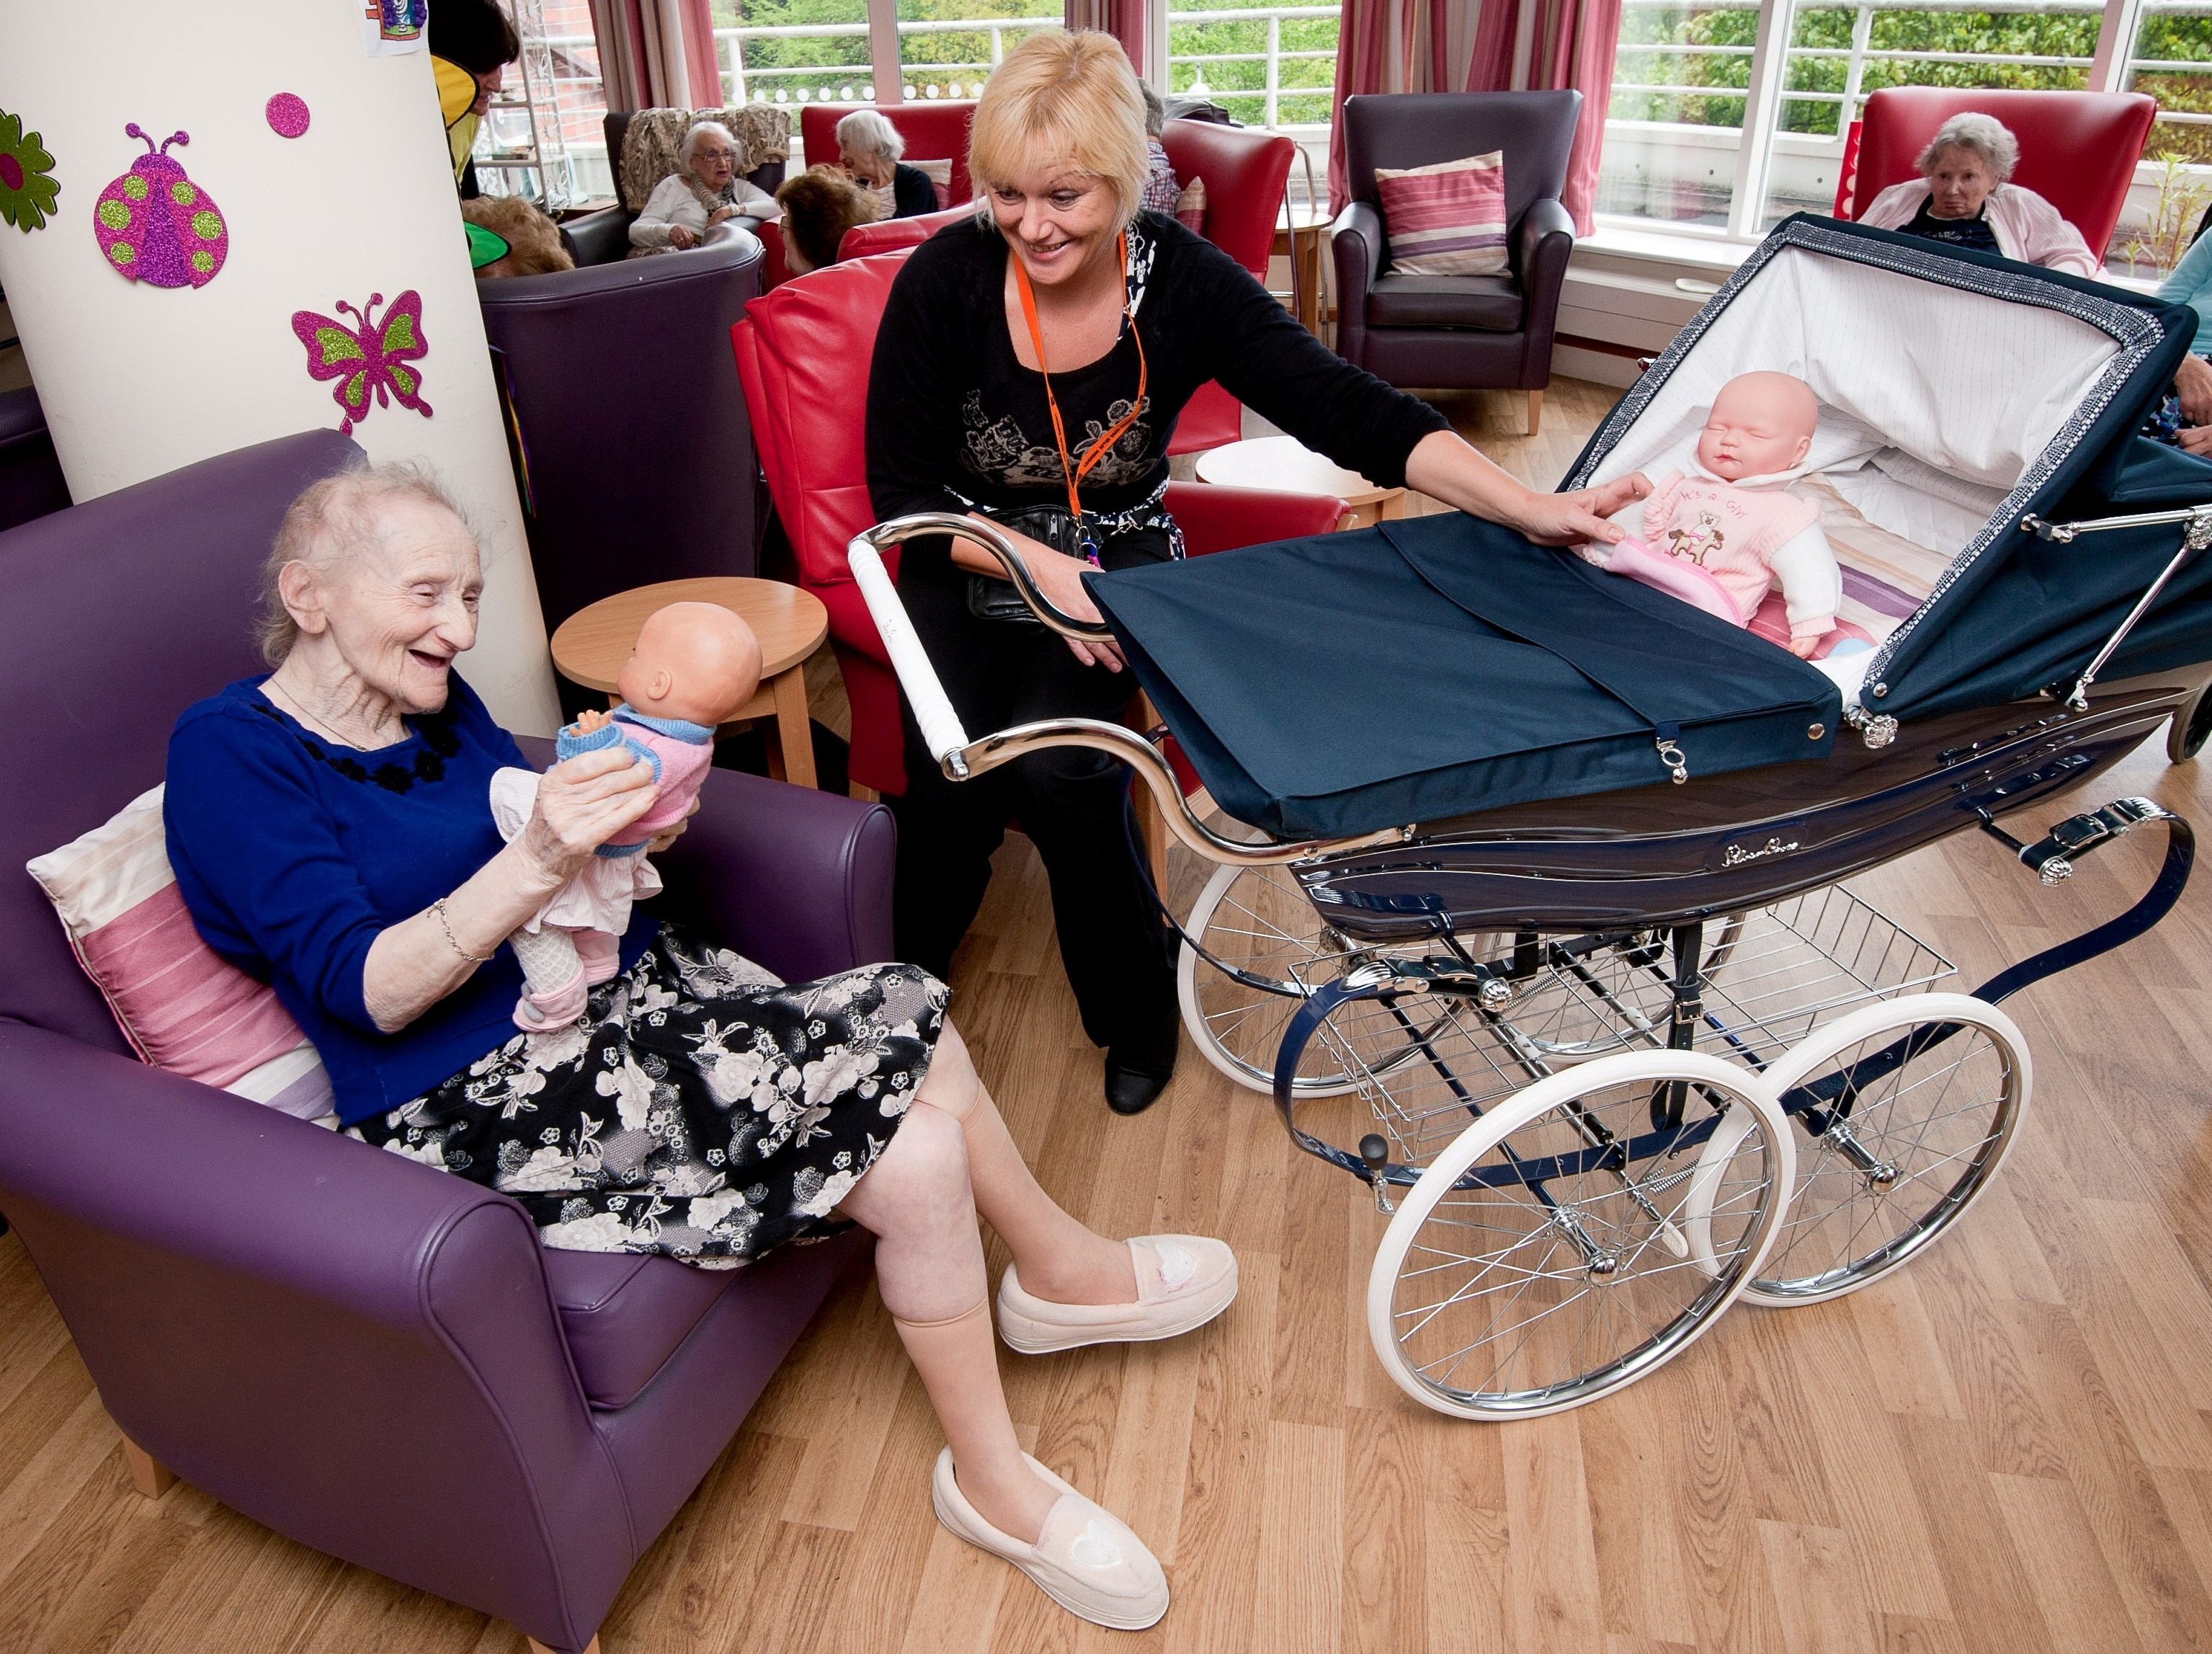 Heathlands Village resident Beatrice Colomberg,79, participating in doll therapy with social care worker Wendy Ward using a Silver Cross pram